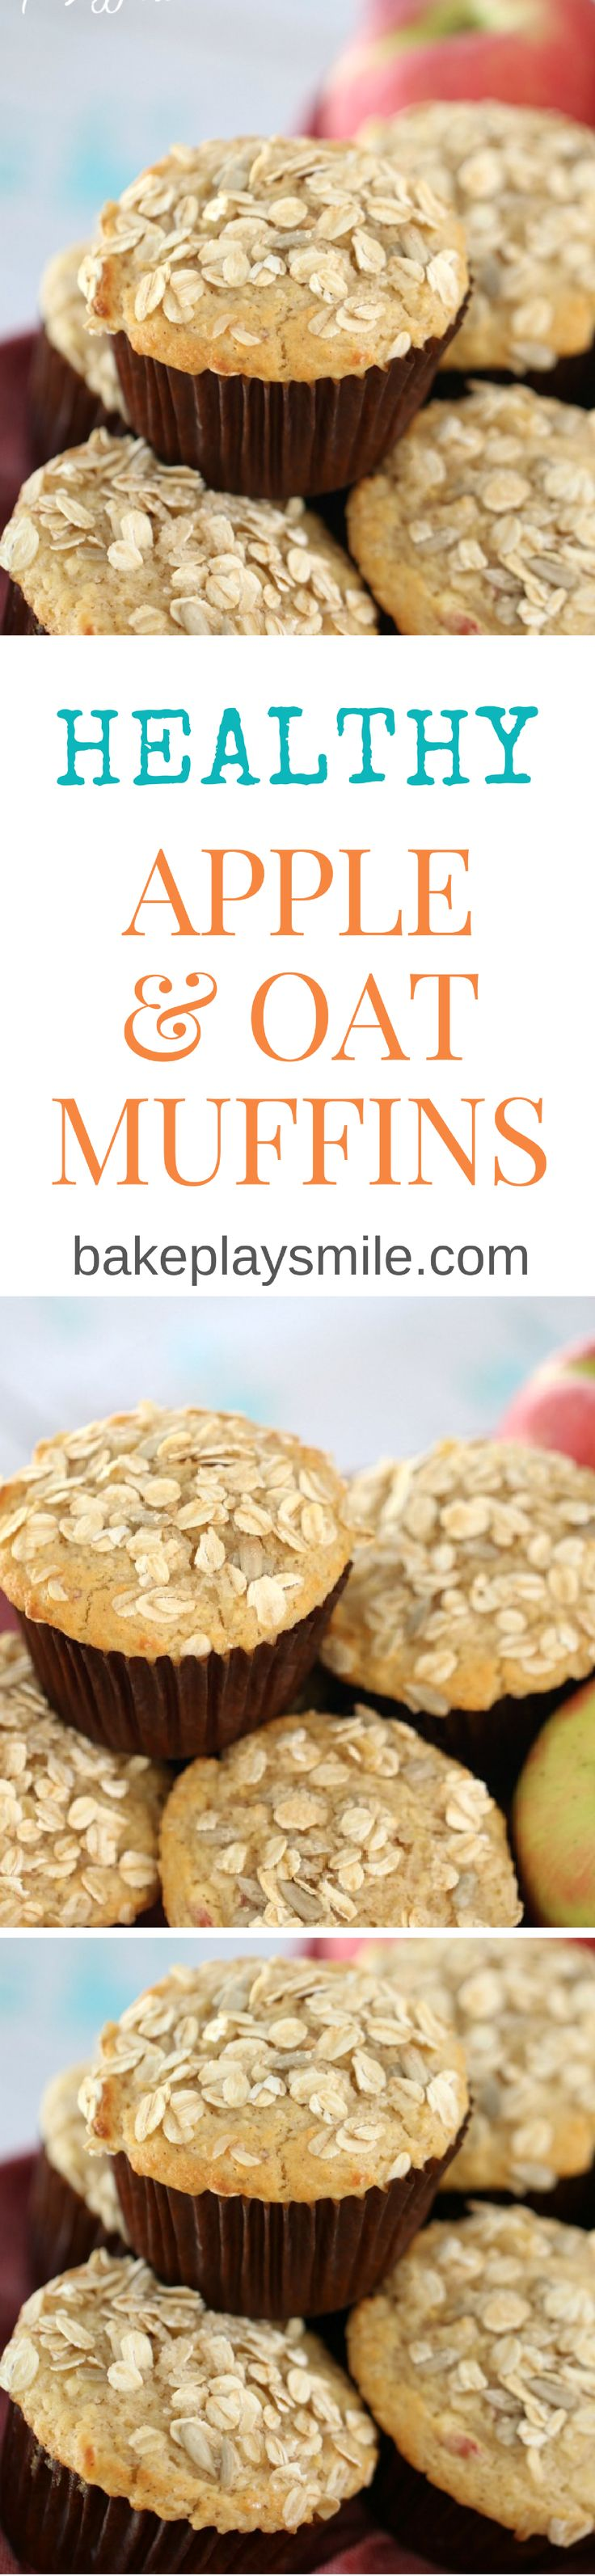 These Oat & Apple Muffins are so quick and easy. Just 10 minutes preparation and you'll have a batch of the most deliciously moist muffins. Perfect for lunch boxes or an afternoon treat. #apple #oat #muffins #healthy #recipe #kids #snacks #conventional #thermomix #easy http://bakeplaysmile.com/oat-apple-muffins/